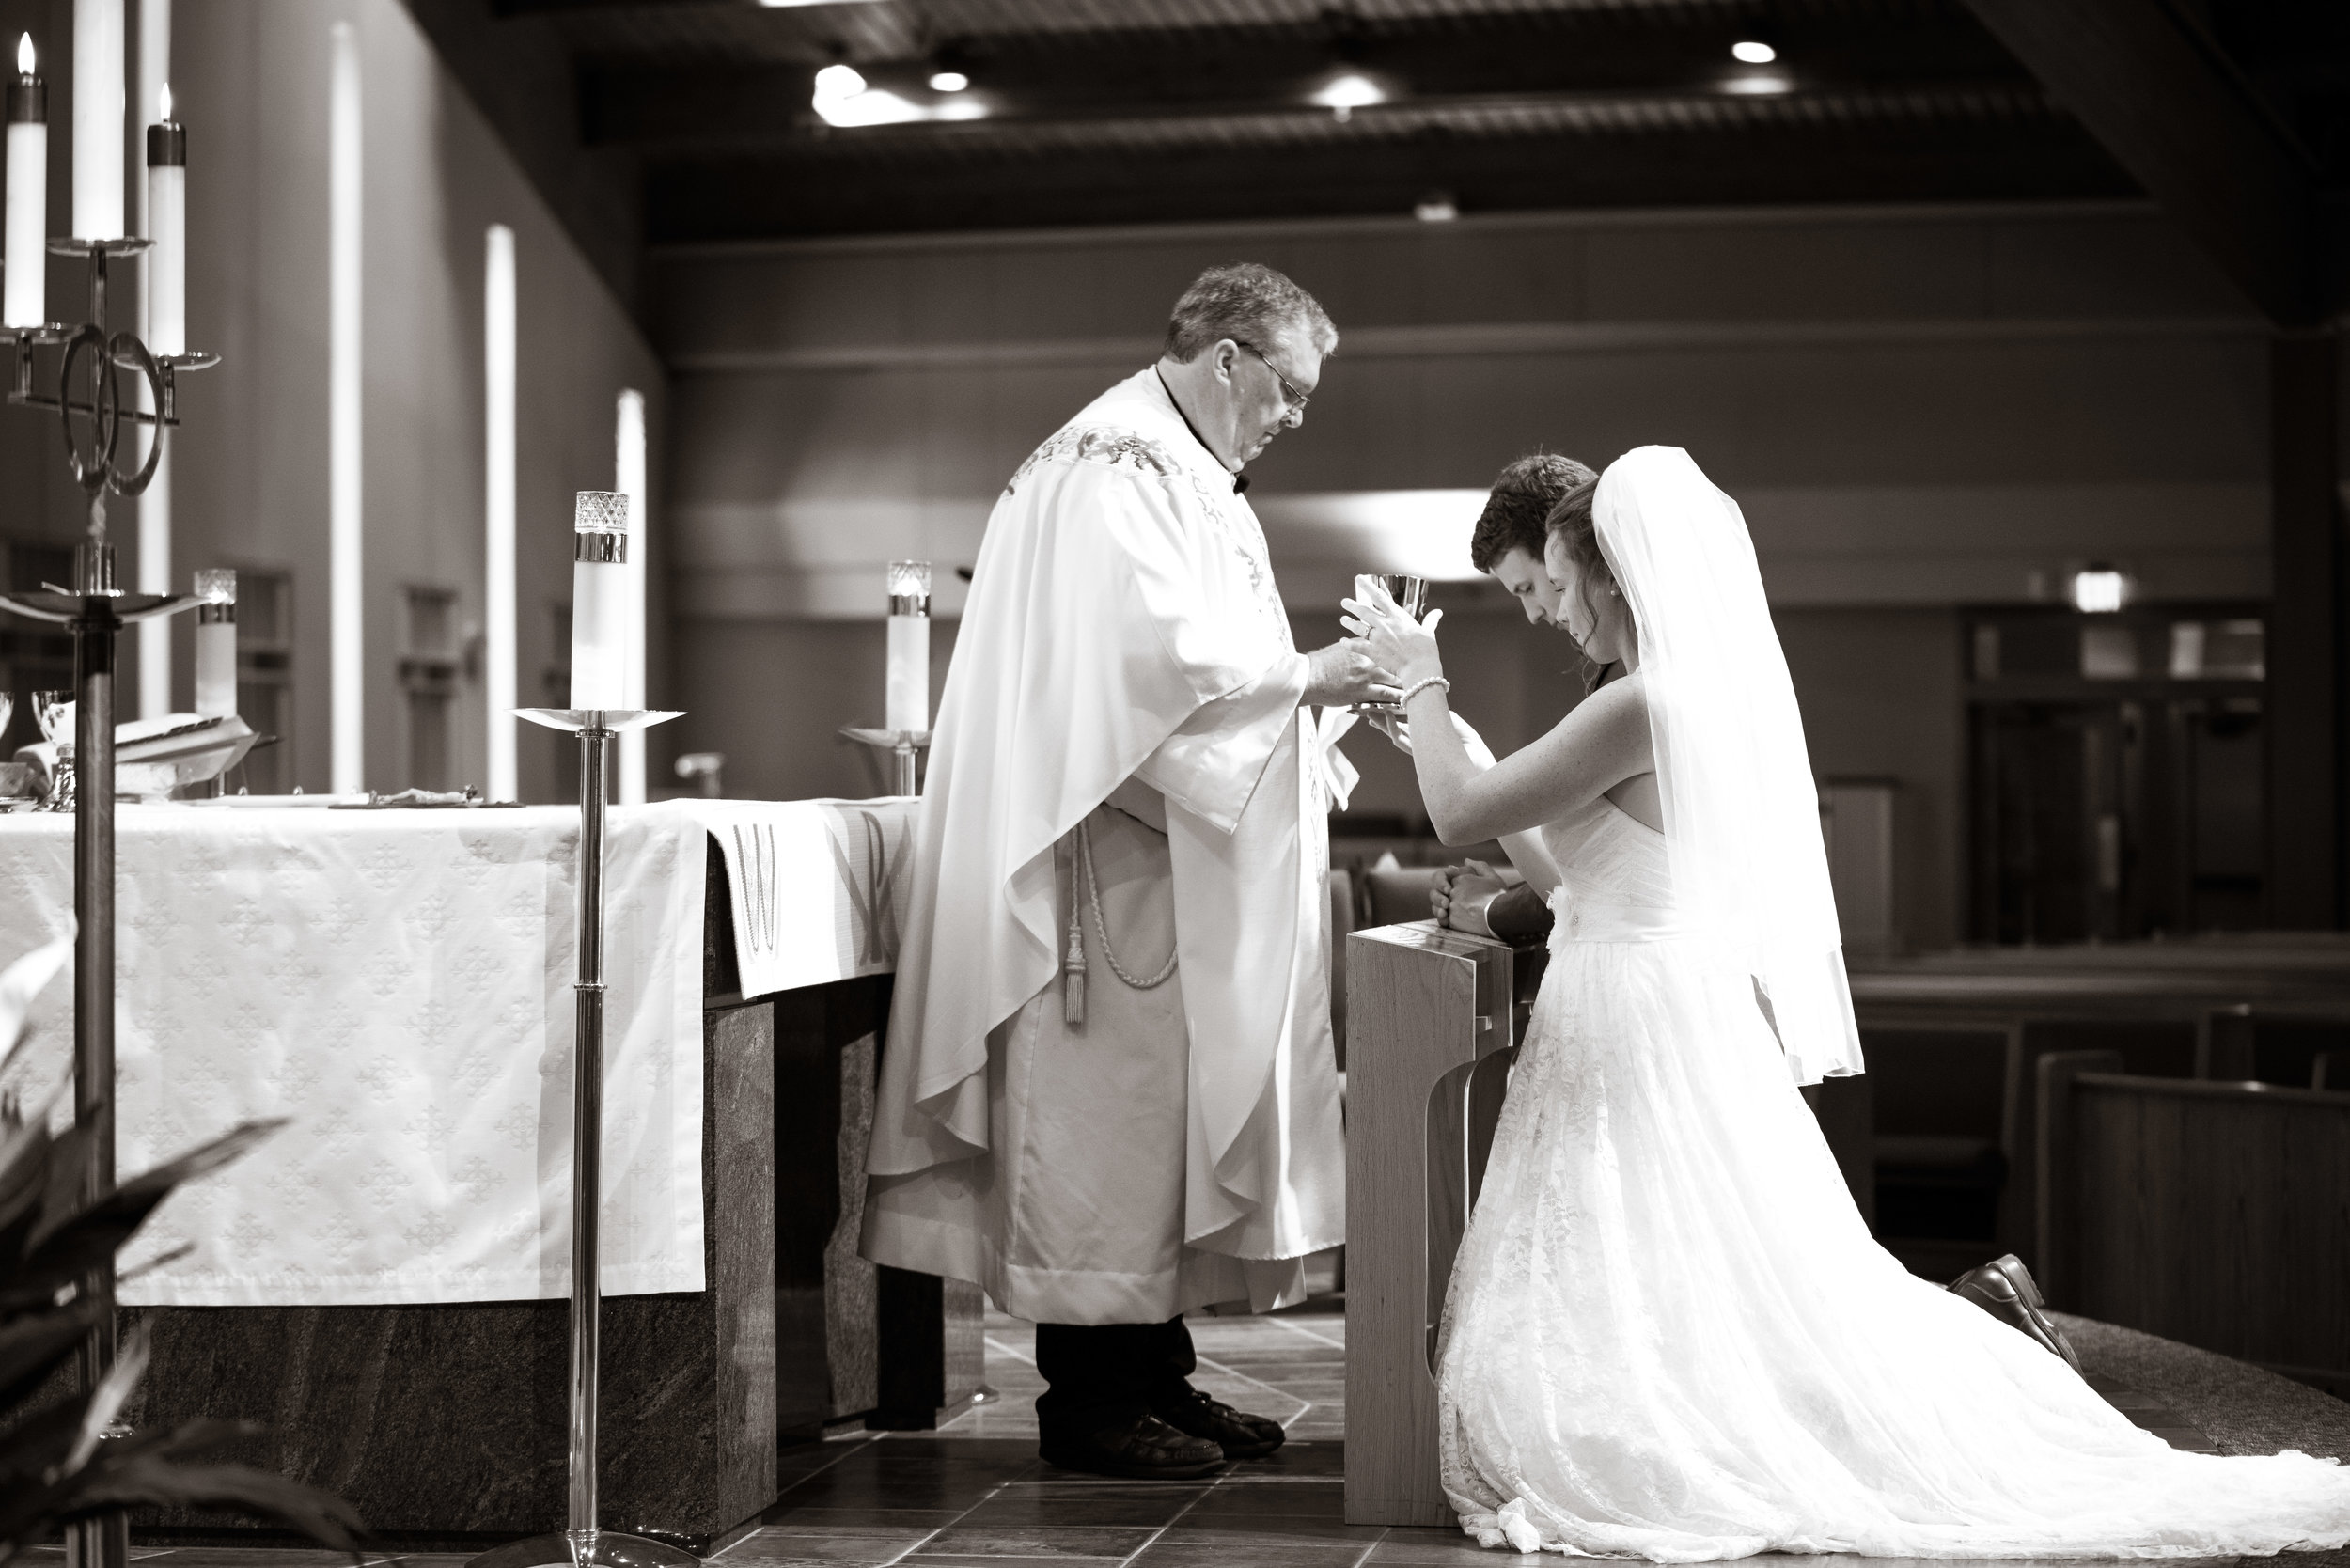 Bride and priest at the alter | St Mary Magdalene Catholic Church Simpsonville, SC